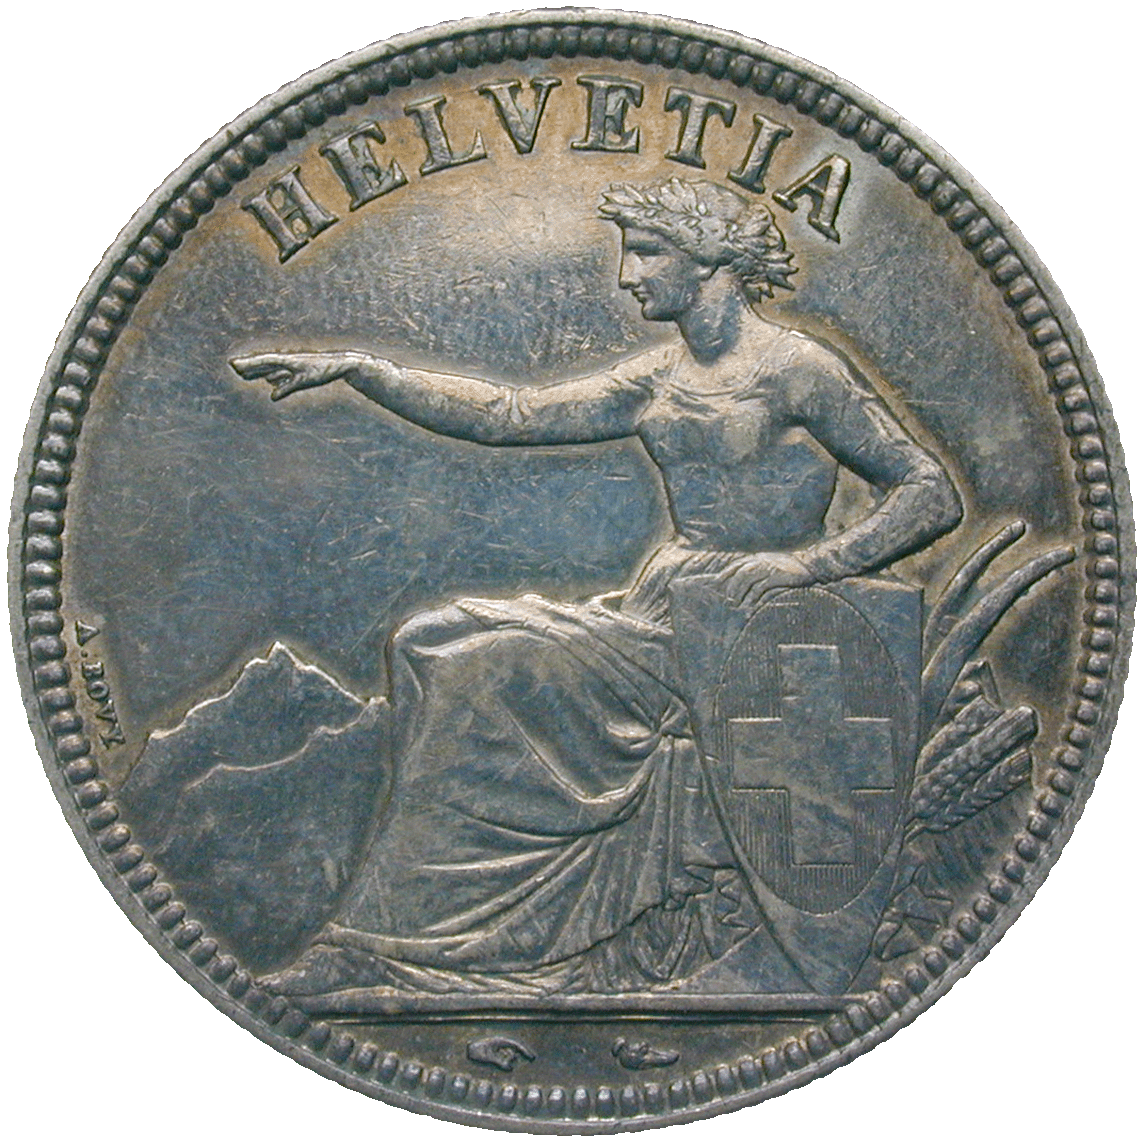 Swiss Confederation, 5 Francs 1851 (obverse)